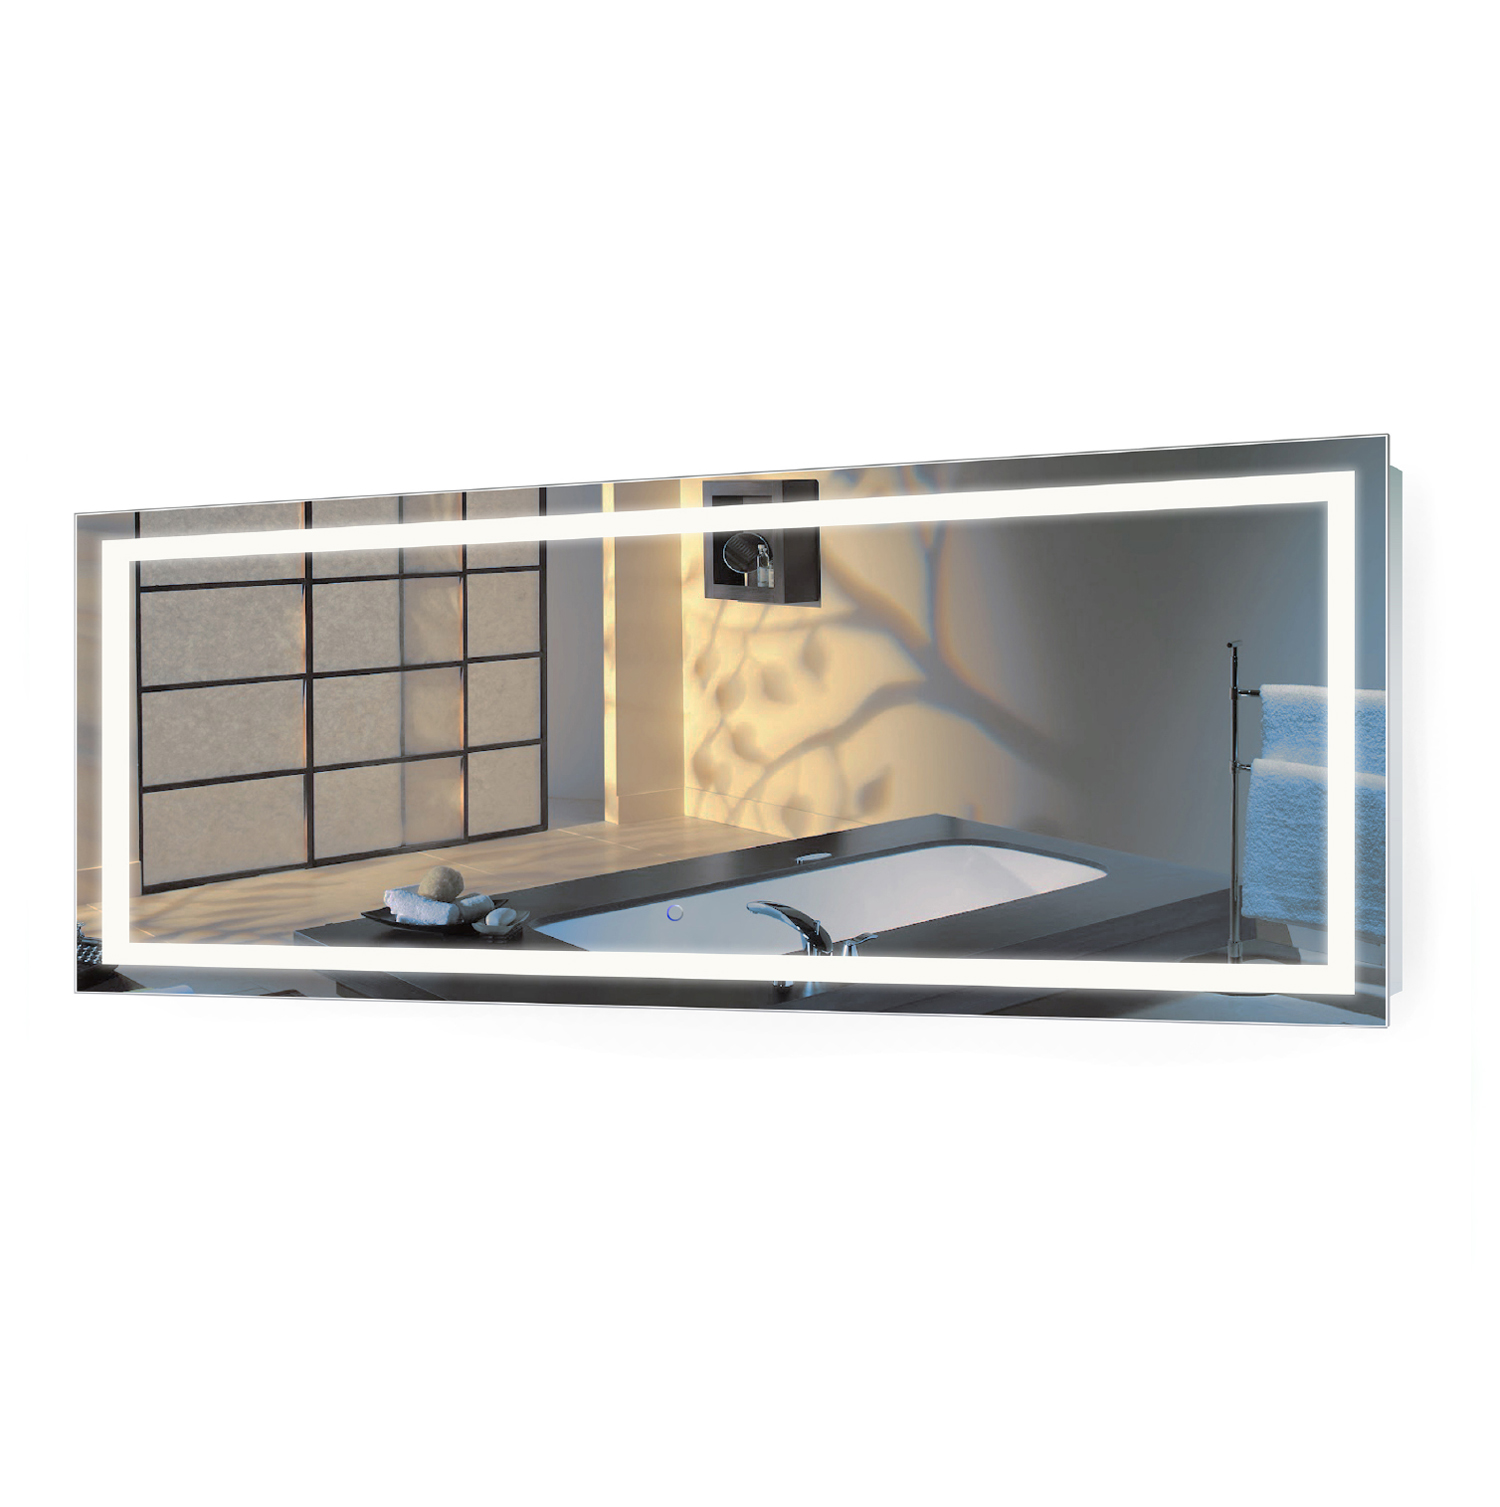 Large 72 Inch X 30 Inch LED Bathroom Mirror | Lighted Vanity Mirror Includes Dimmer & Defogger